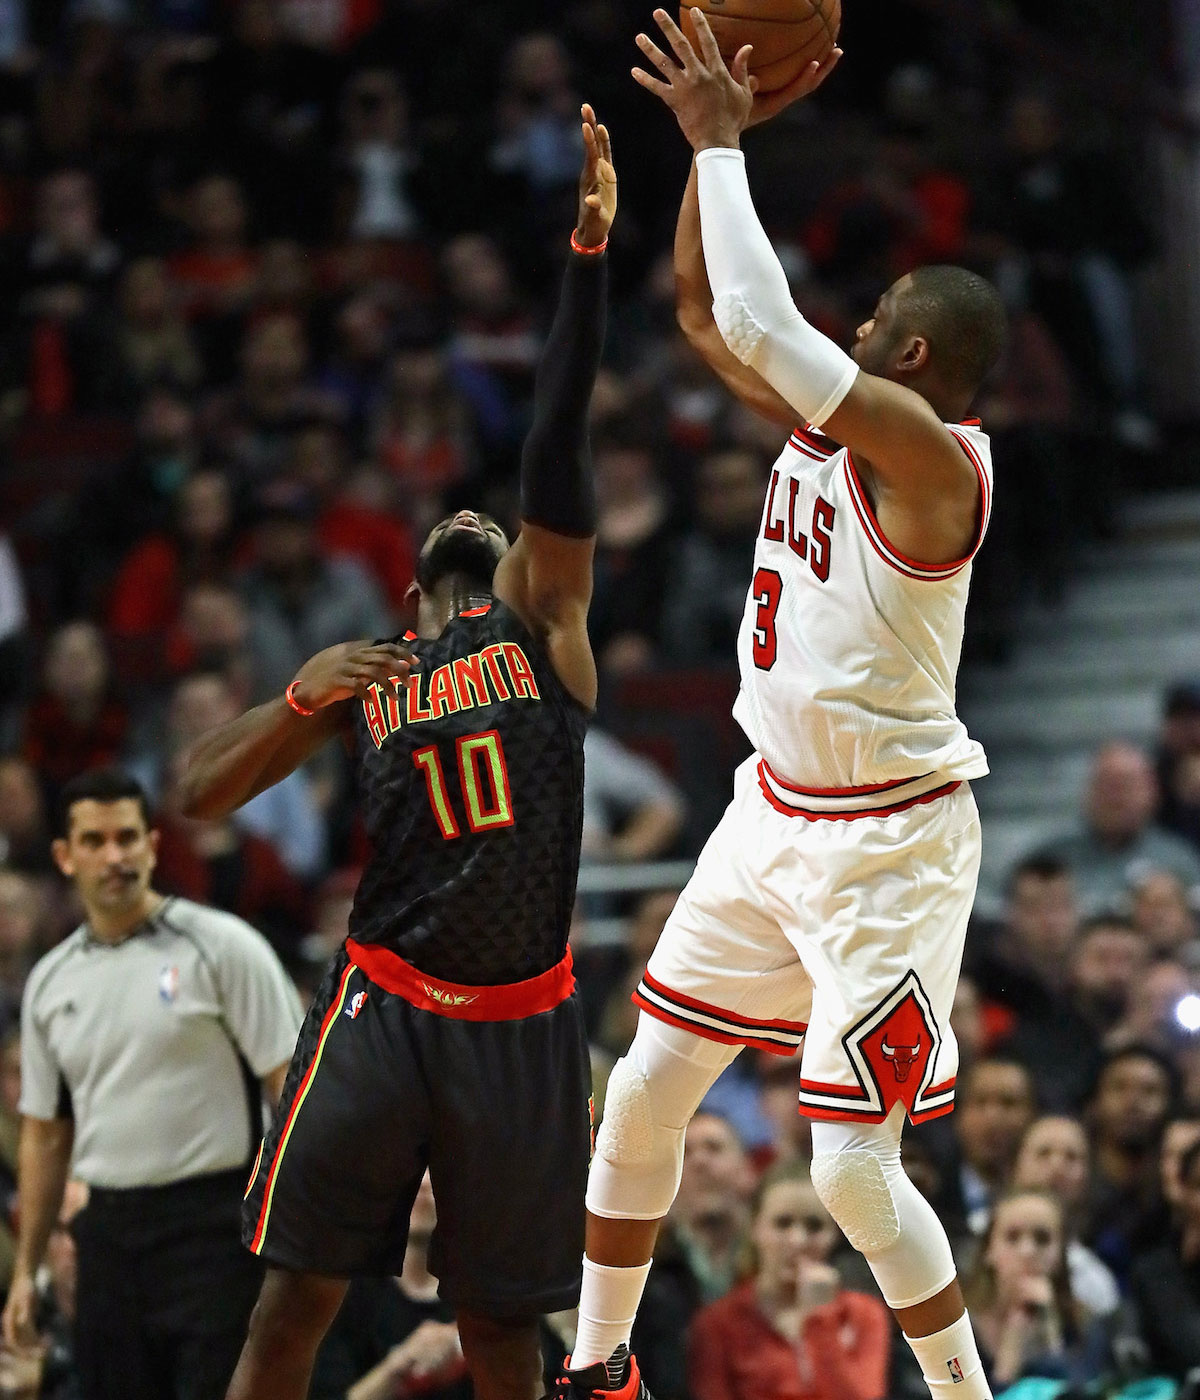 Dwyane Wade #3 of the Chicago Bulls shoots over Tim Hardaway Jr. #10 of the Atlanta Hawks at the United Center on January 25, 2017 in Chicago, Illinois.